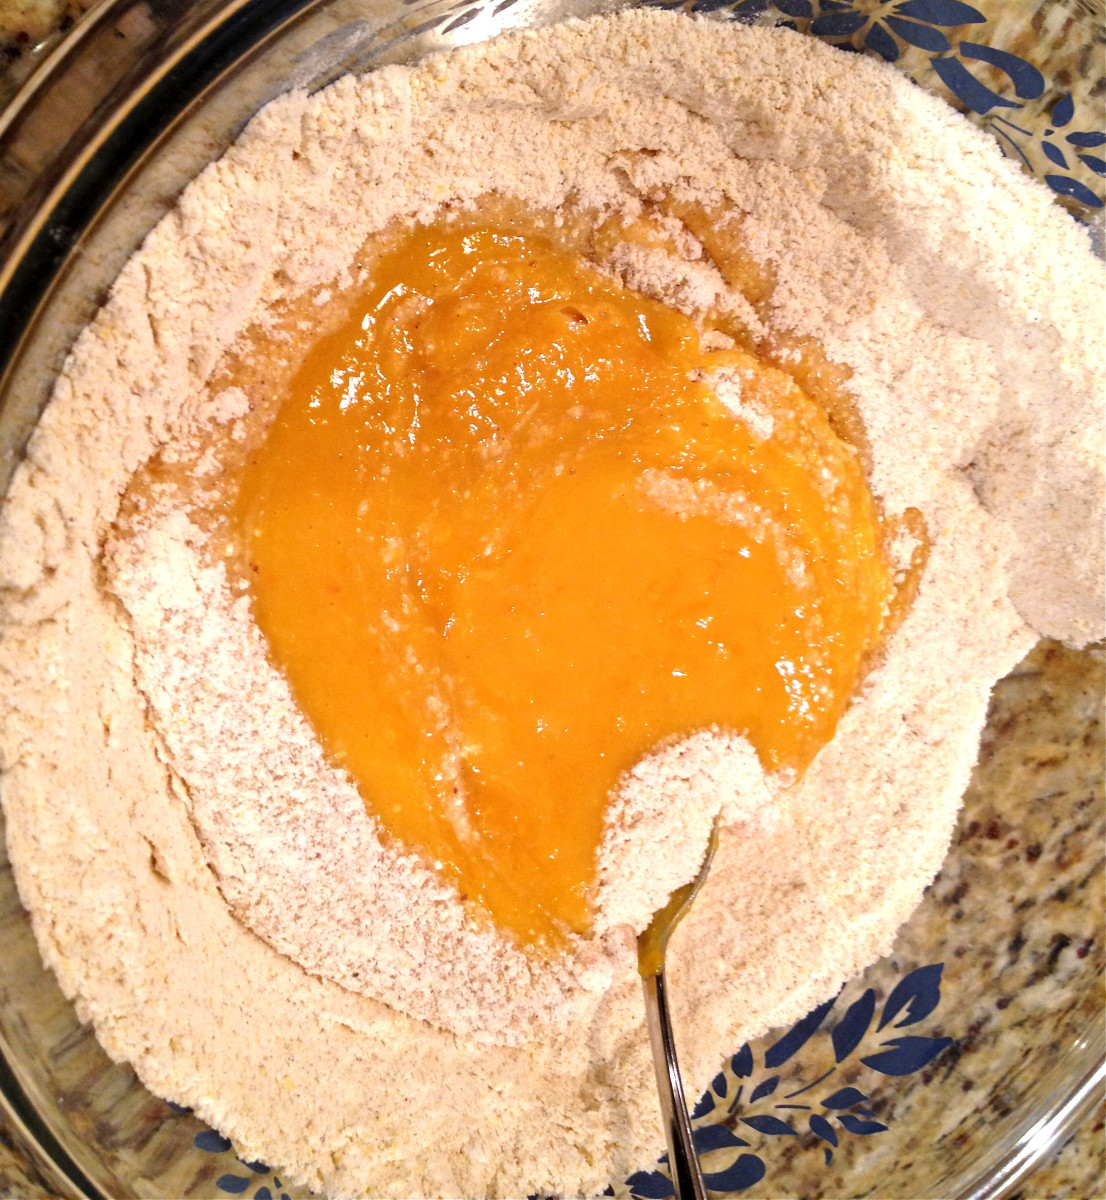 Pour wet ingredients into dry ingredients and stir just until combined. Be careful not to over stir.